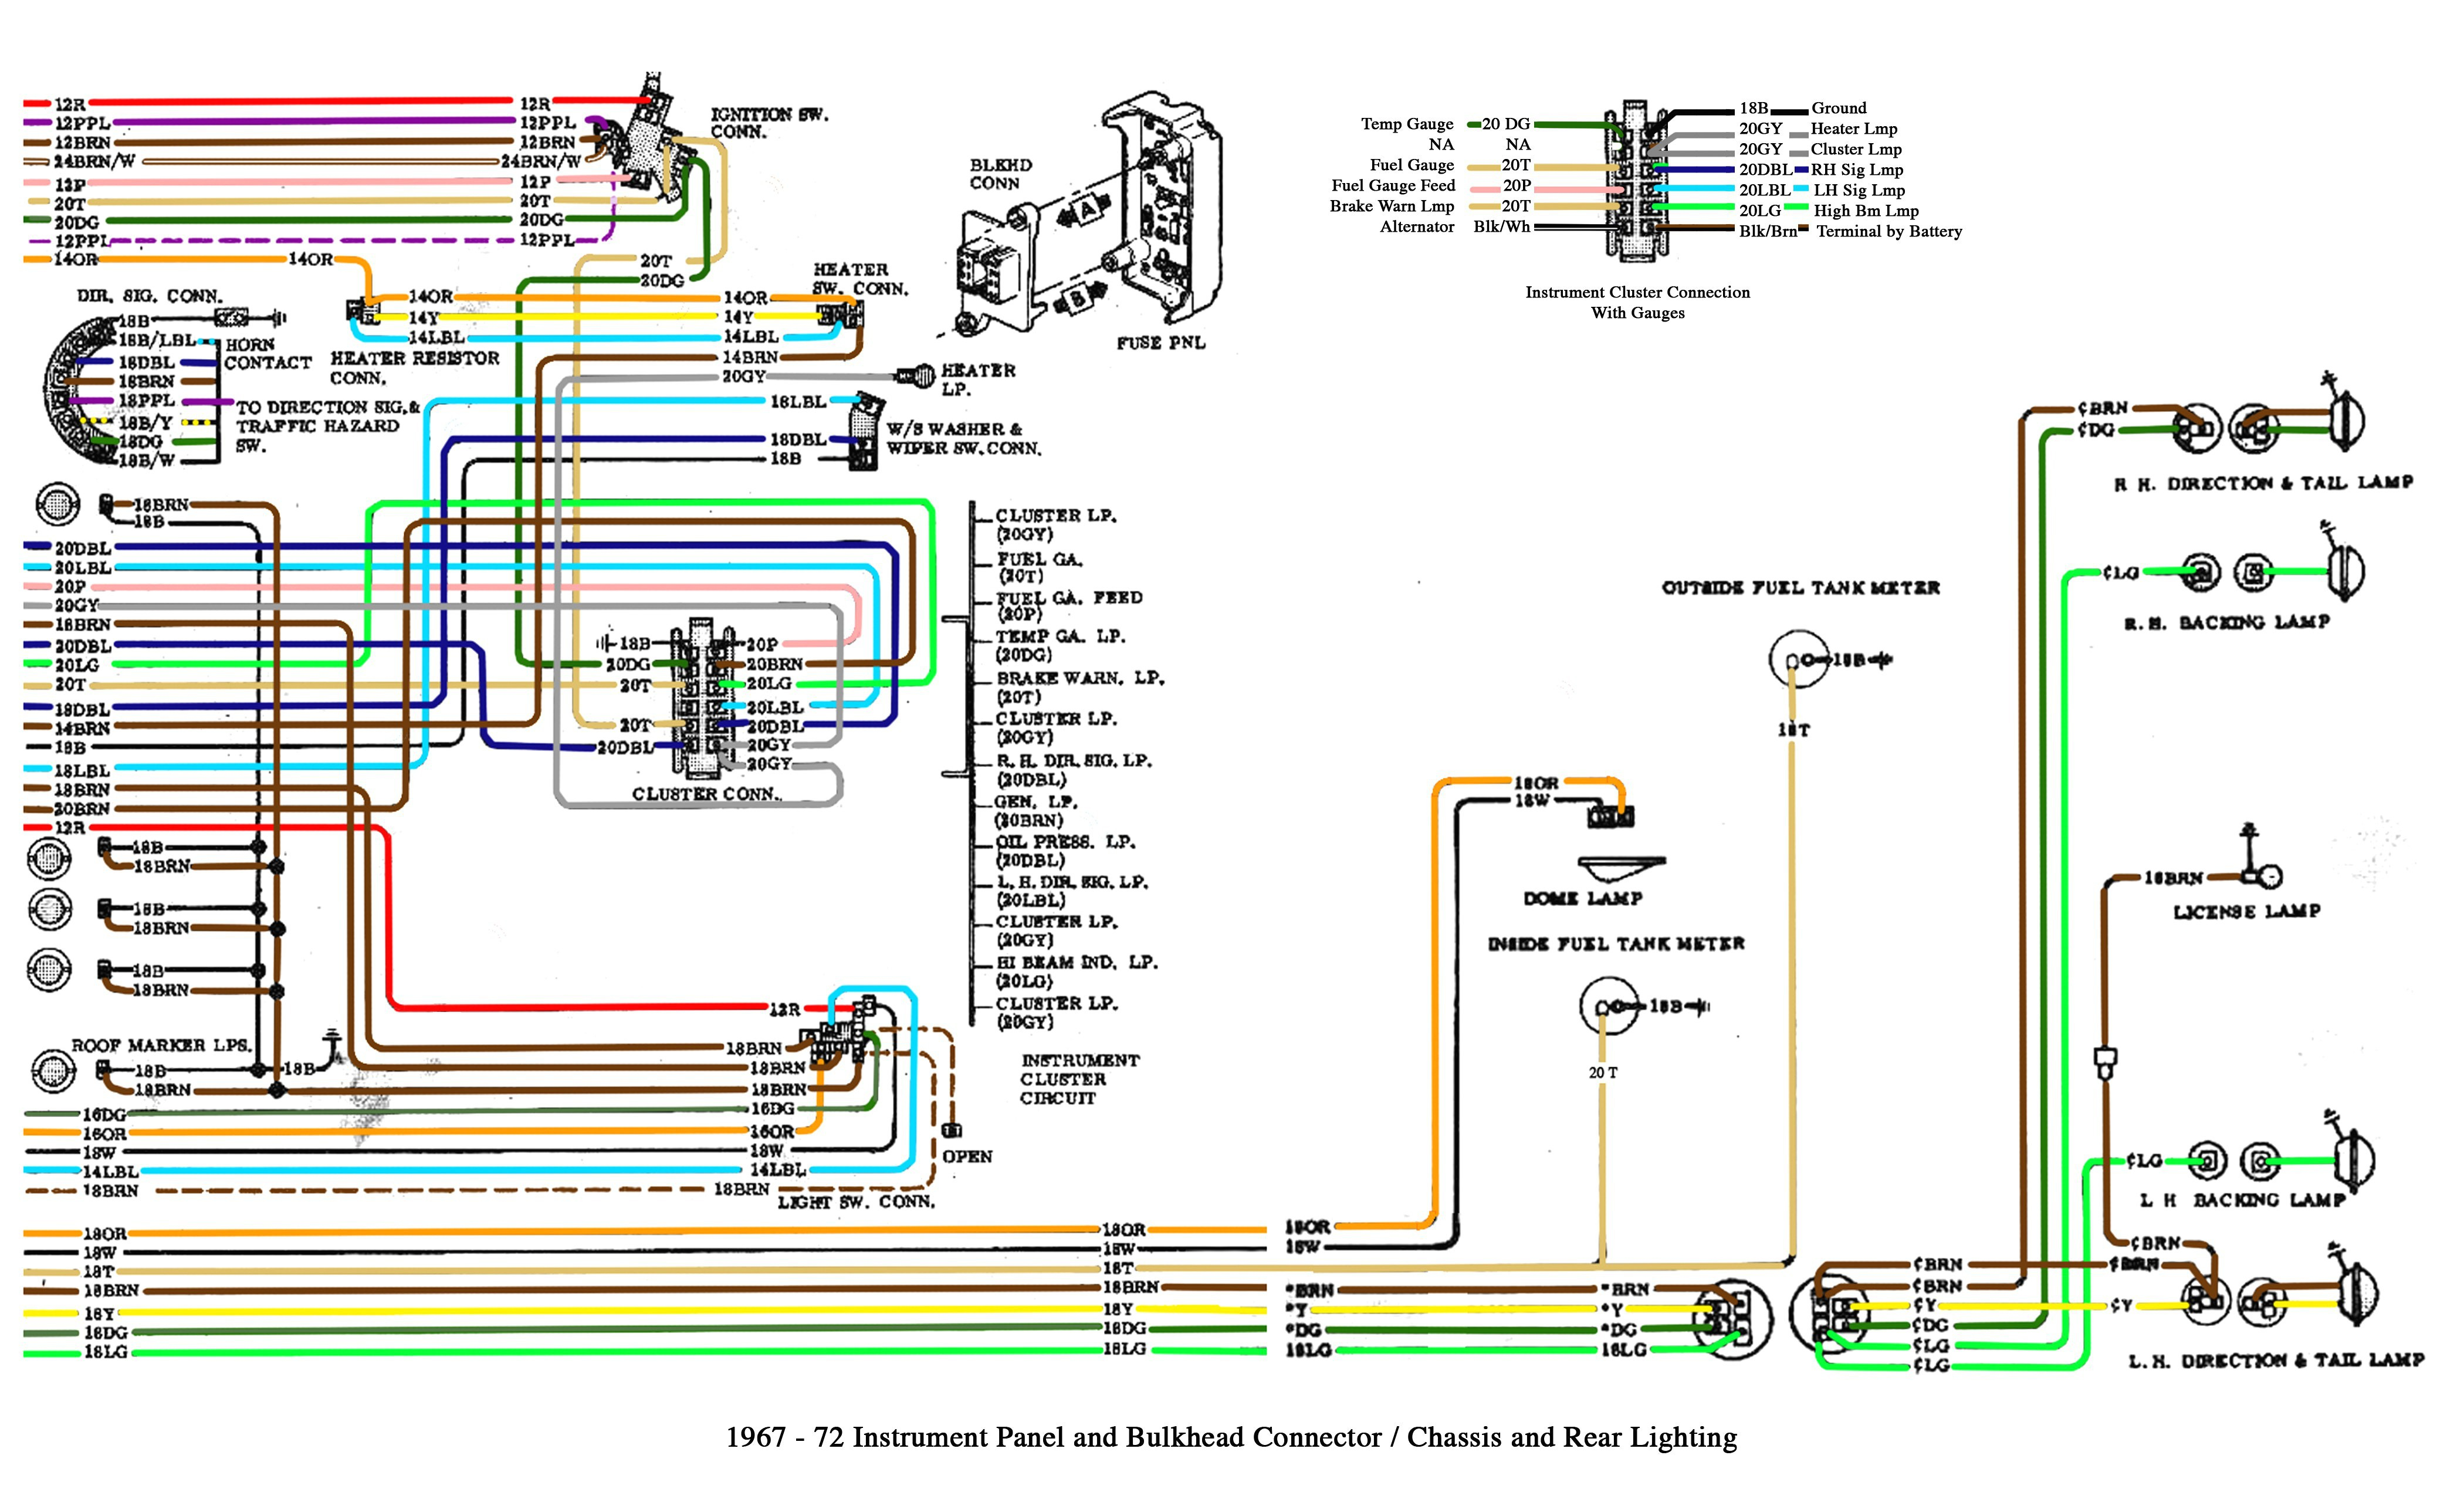 2004 chevy tahoe instrument cluster wiring diagram